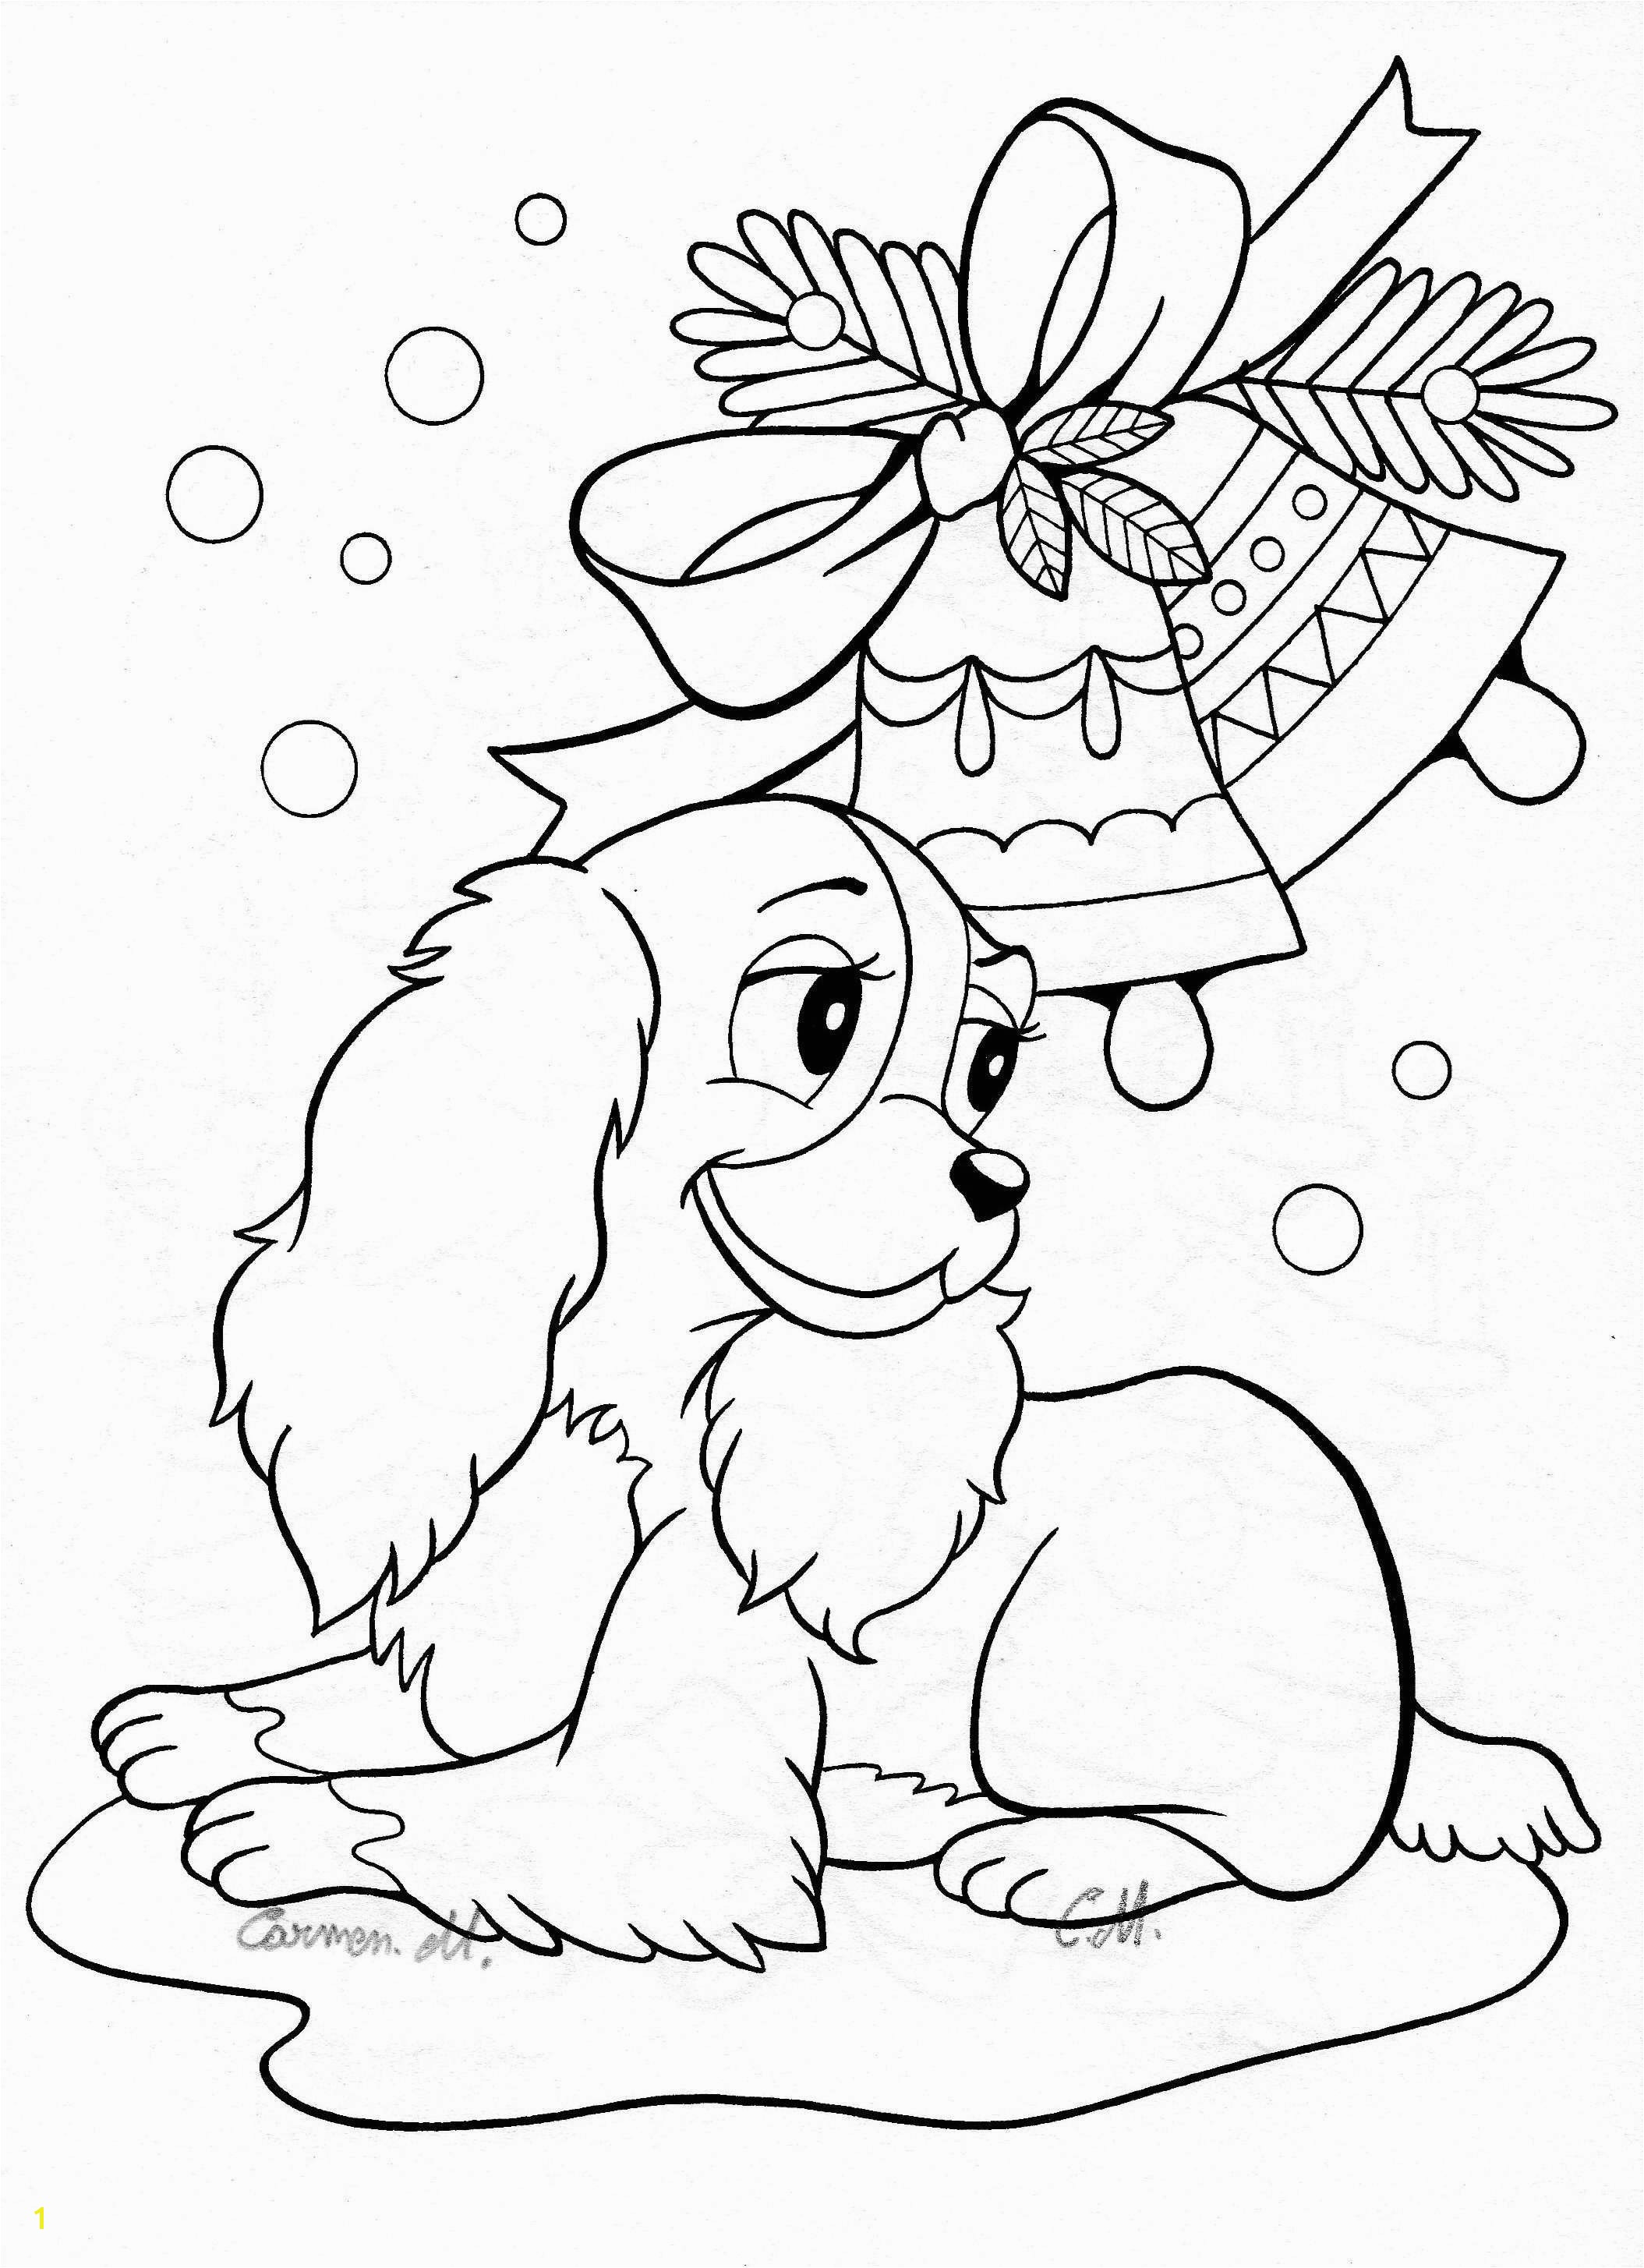 Coloring Pages for Teenagers Printable Free Fresh Printable Od Dog Coloring Pages Free Colouring Pages –